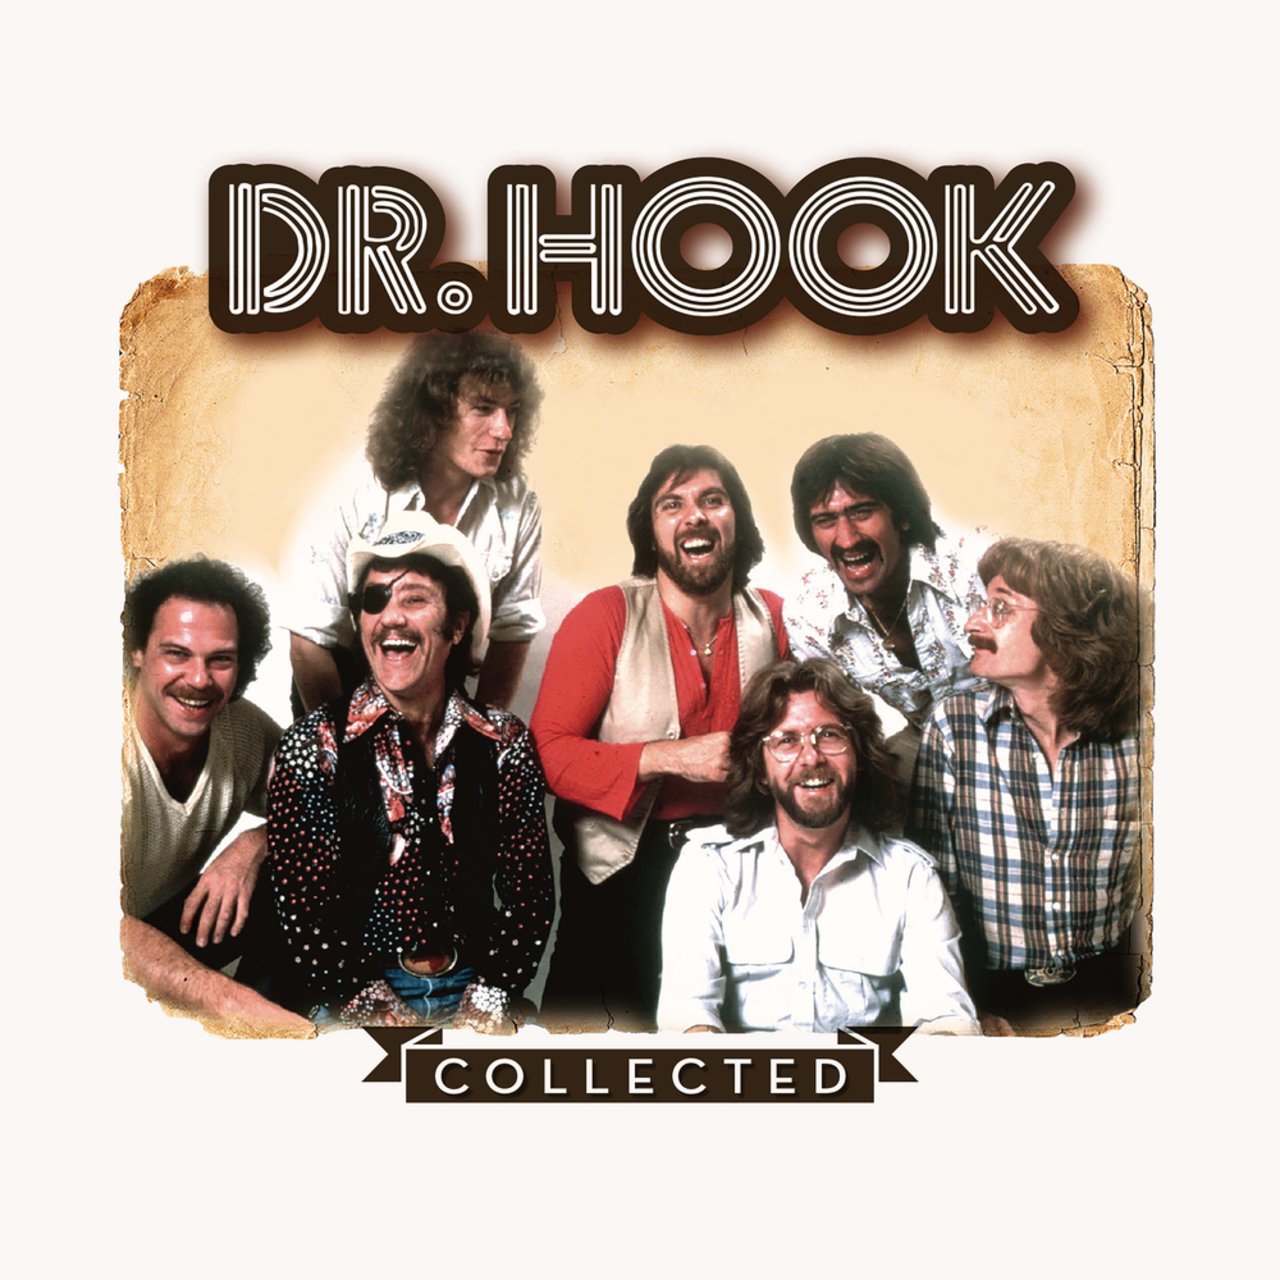 Dr. Hook's Ray Sawyer Dead At 81